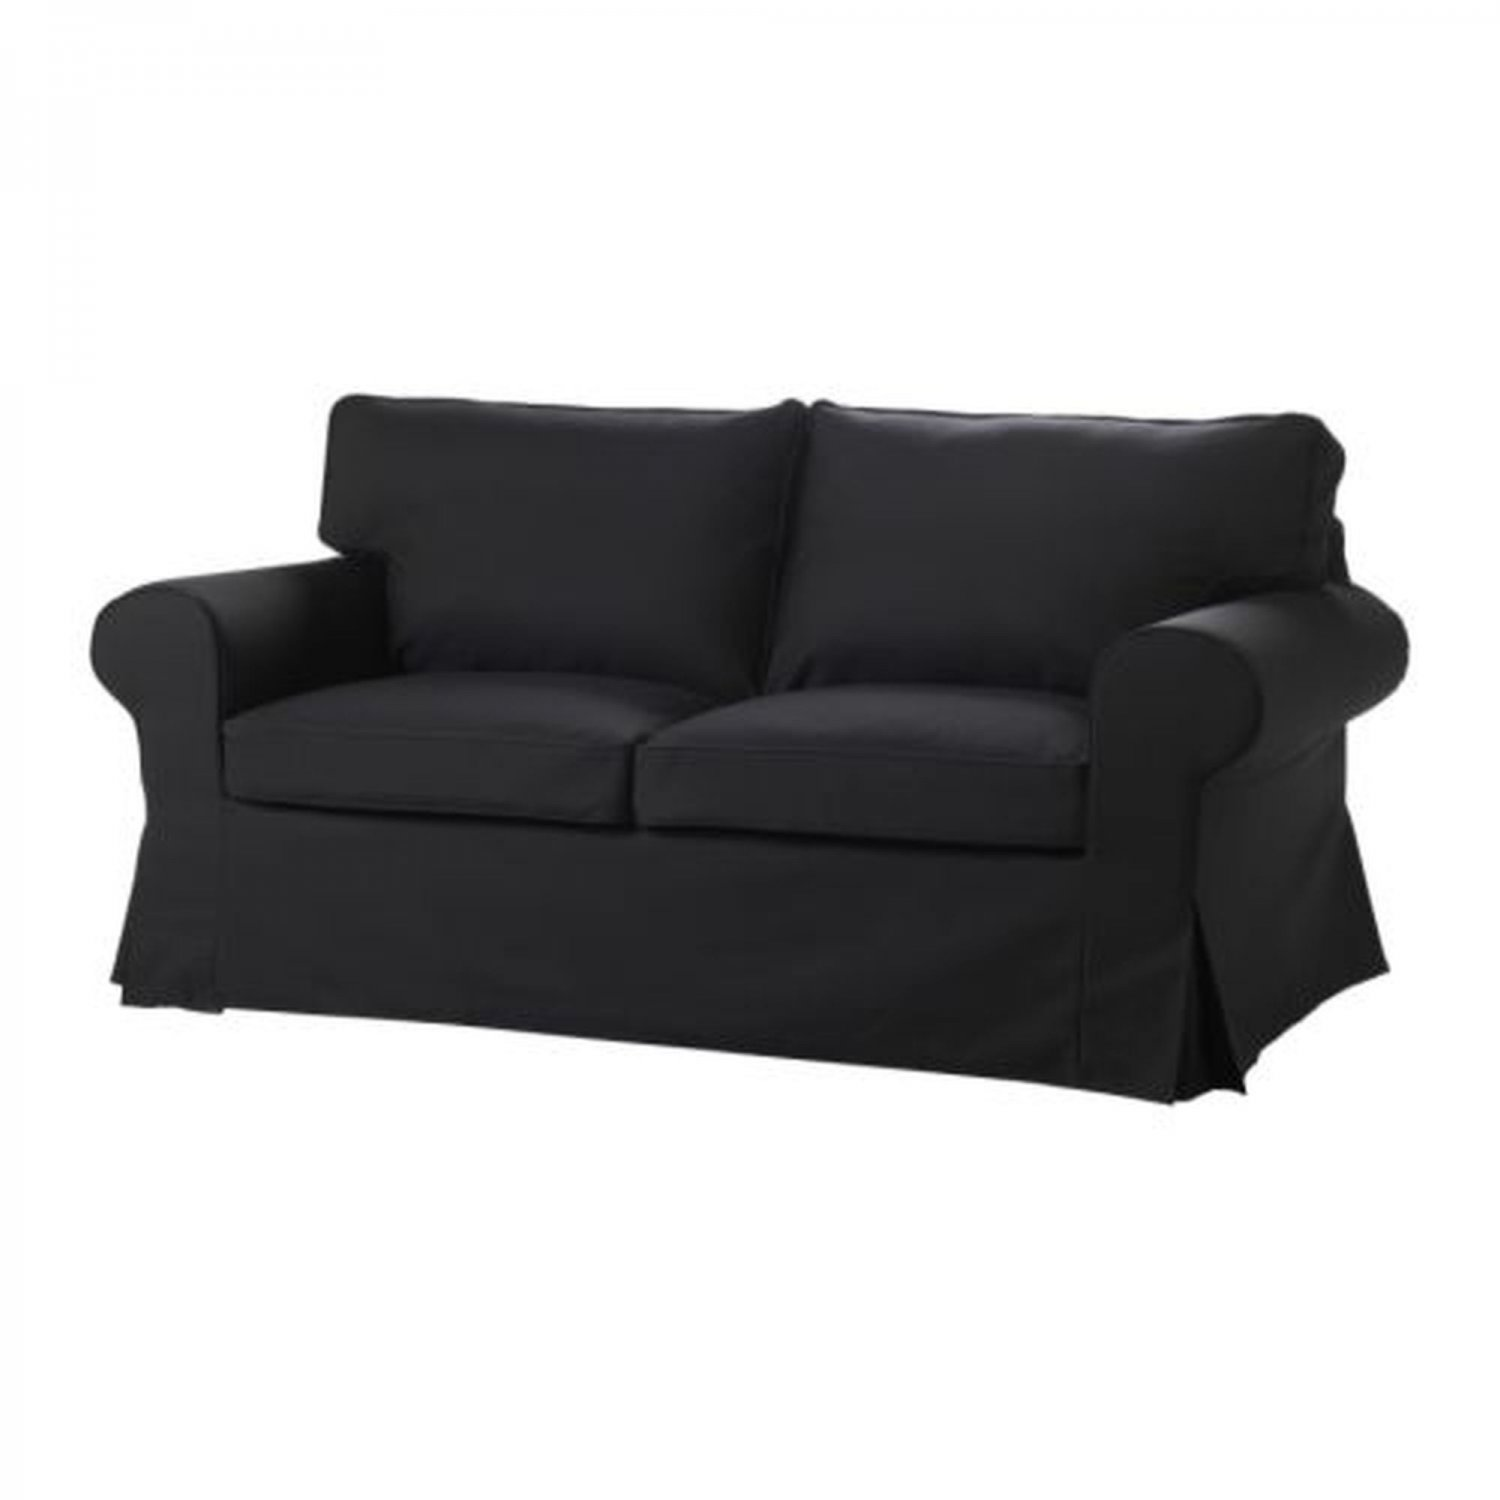 ikea karlanda sofa covers uk leather san jose ektorp bed slipcover sofabed cover idemo black